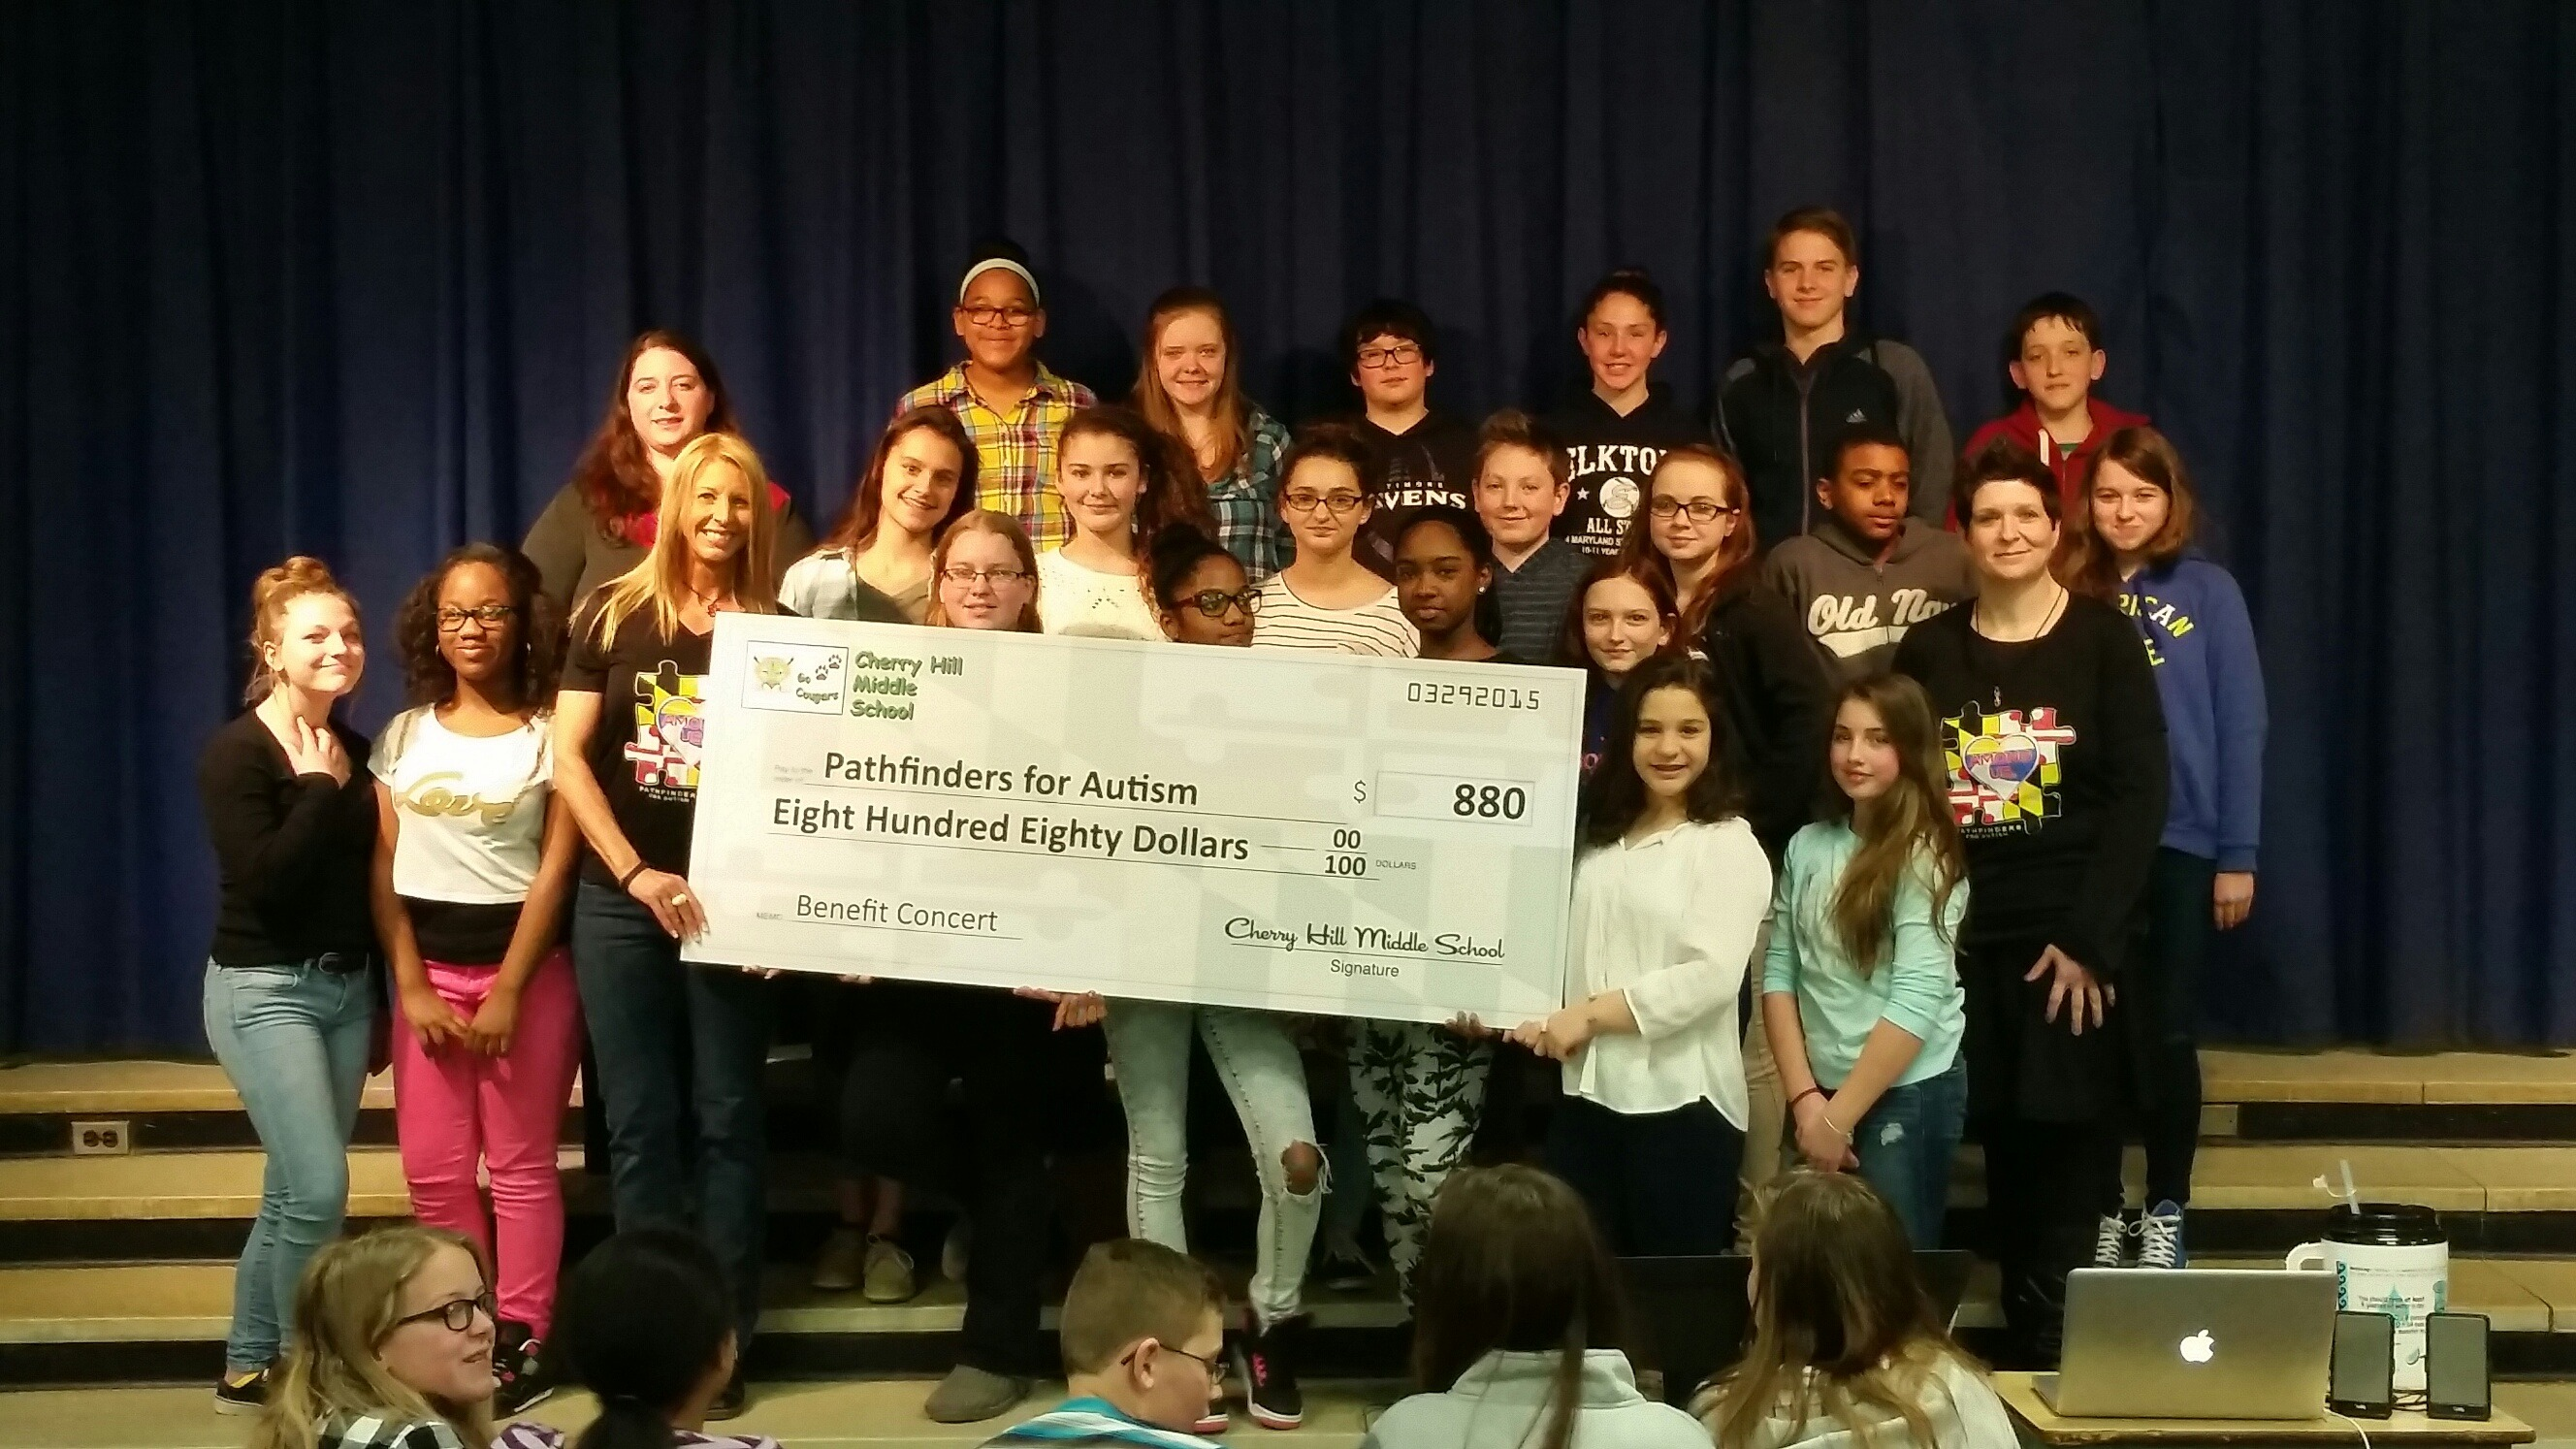 Check presentation with students from Cherry Hill Middle School